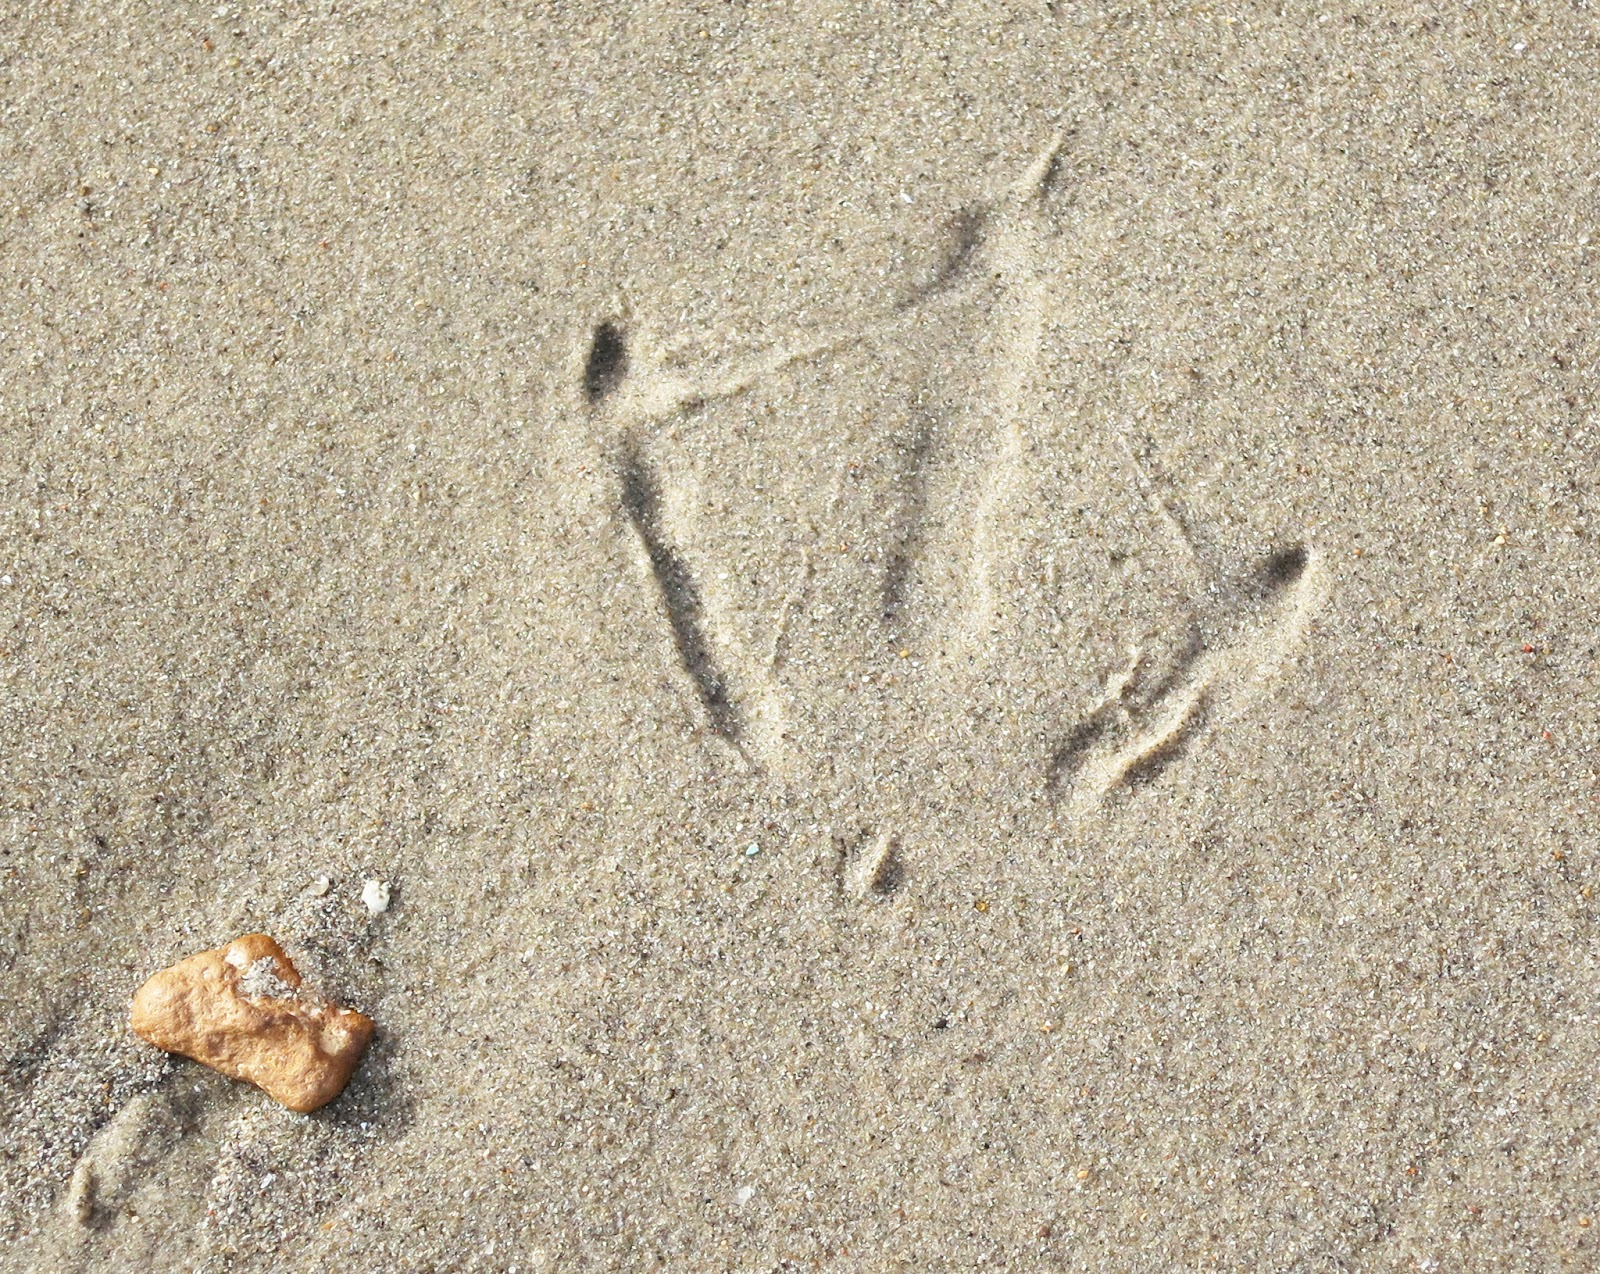 Impression of bird's foot in sand showing traces of web